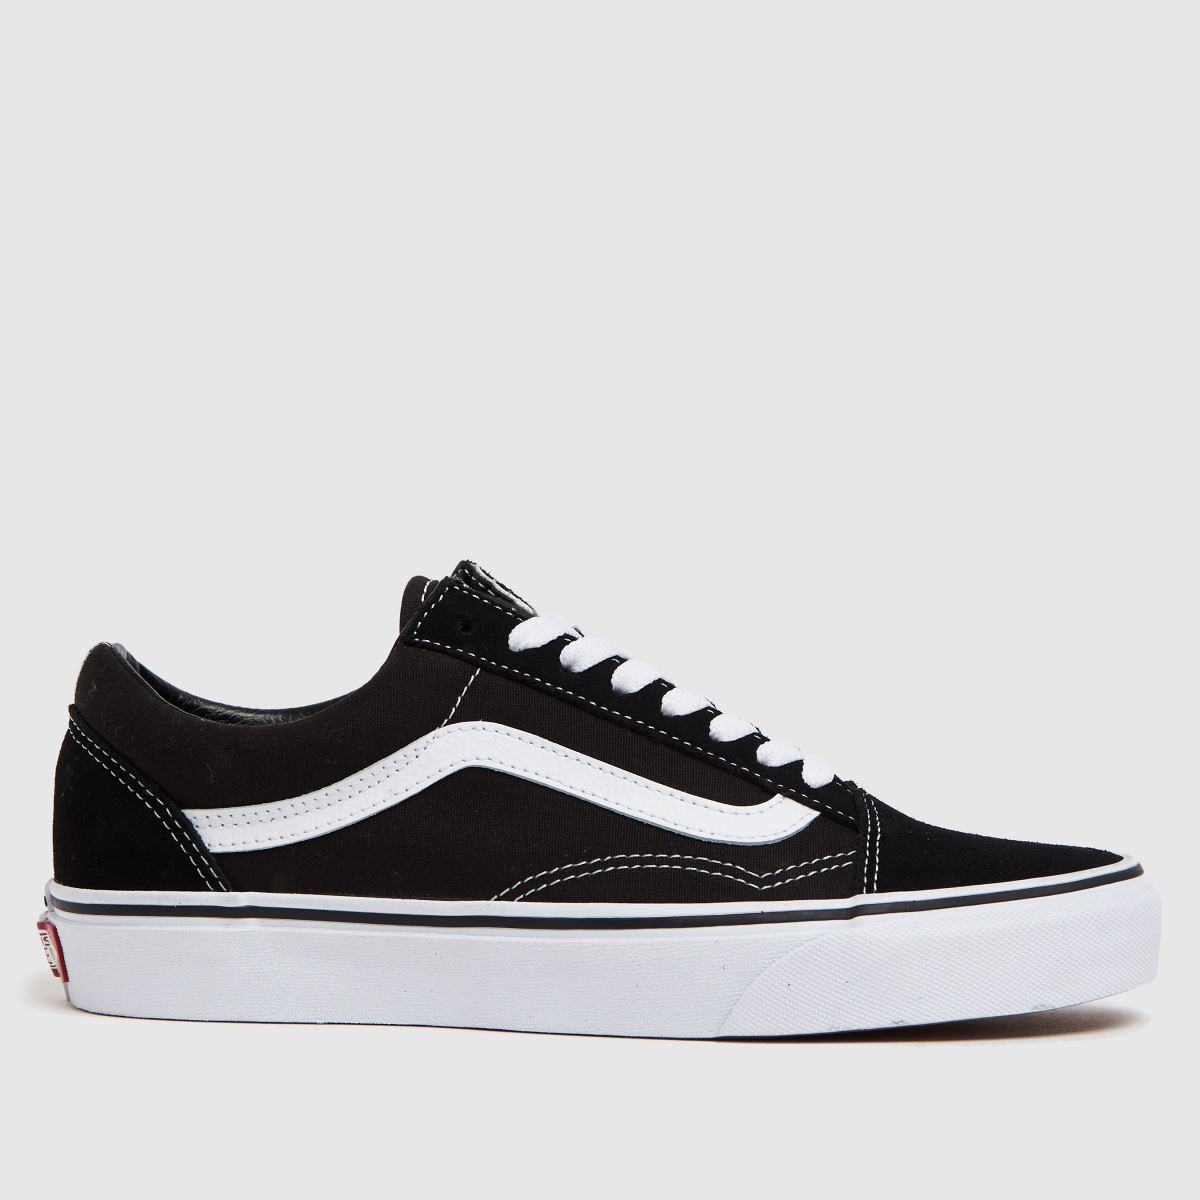 Womens Black Amp White Vans Old Skool Trainers Schuh